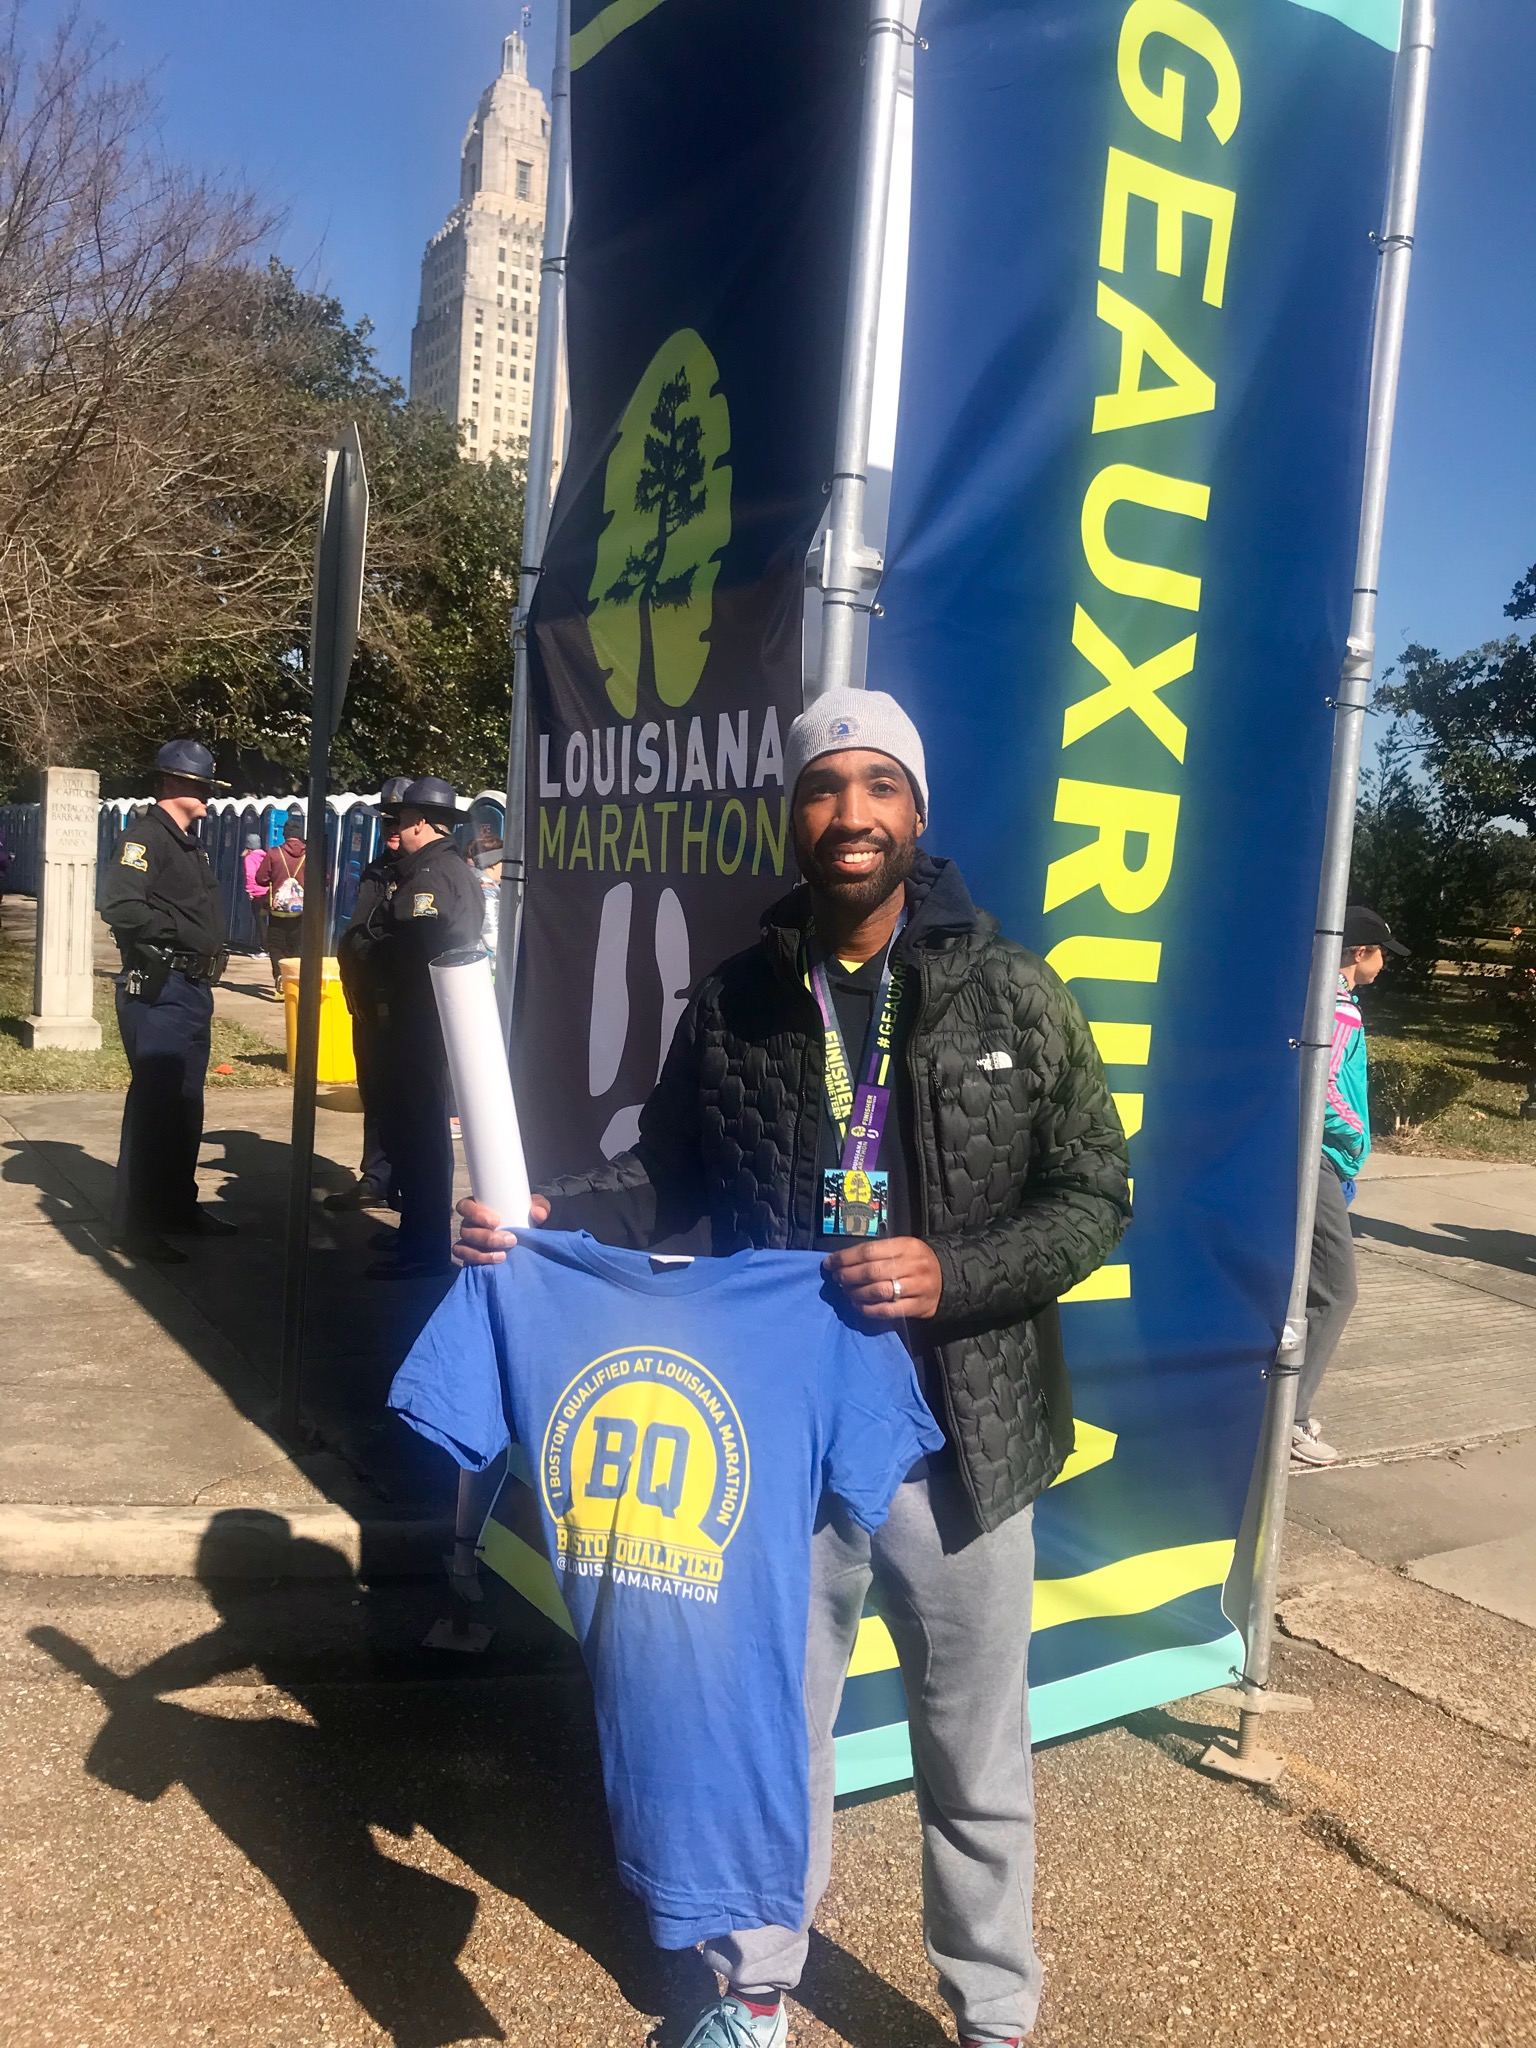 """Free """"BQ"""" Shirt - Nice touch by the race organizers to provide free high-quality shirts to every participant that ran a Boston-qualifying time at the race."""